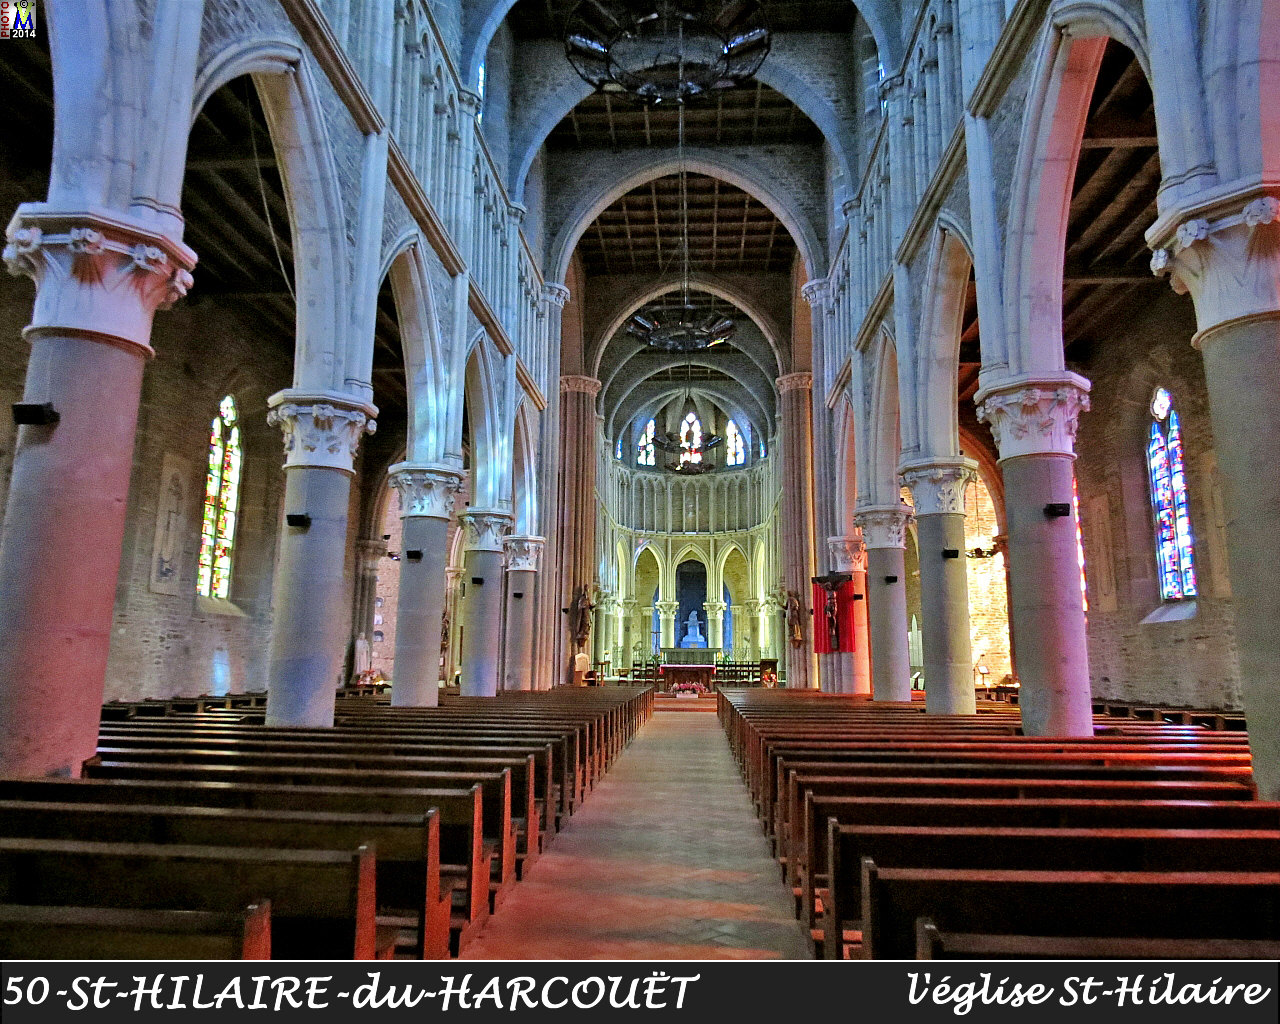 50StHILAIRE-HARCOUET_eglise_200.jpg